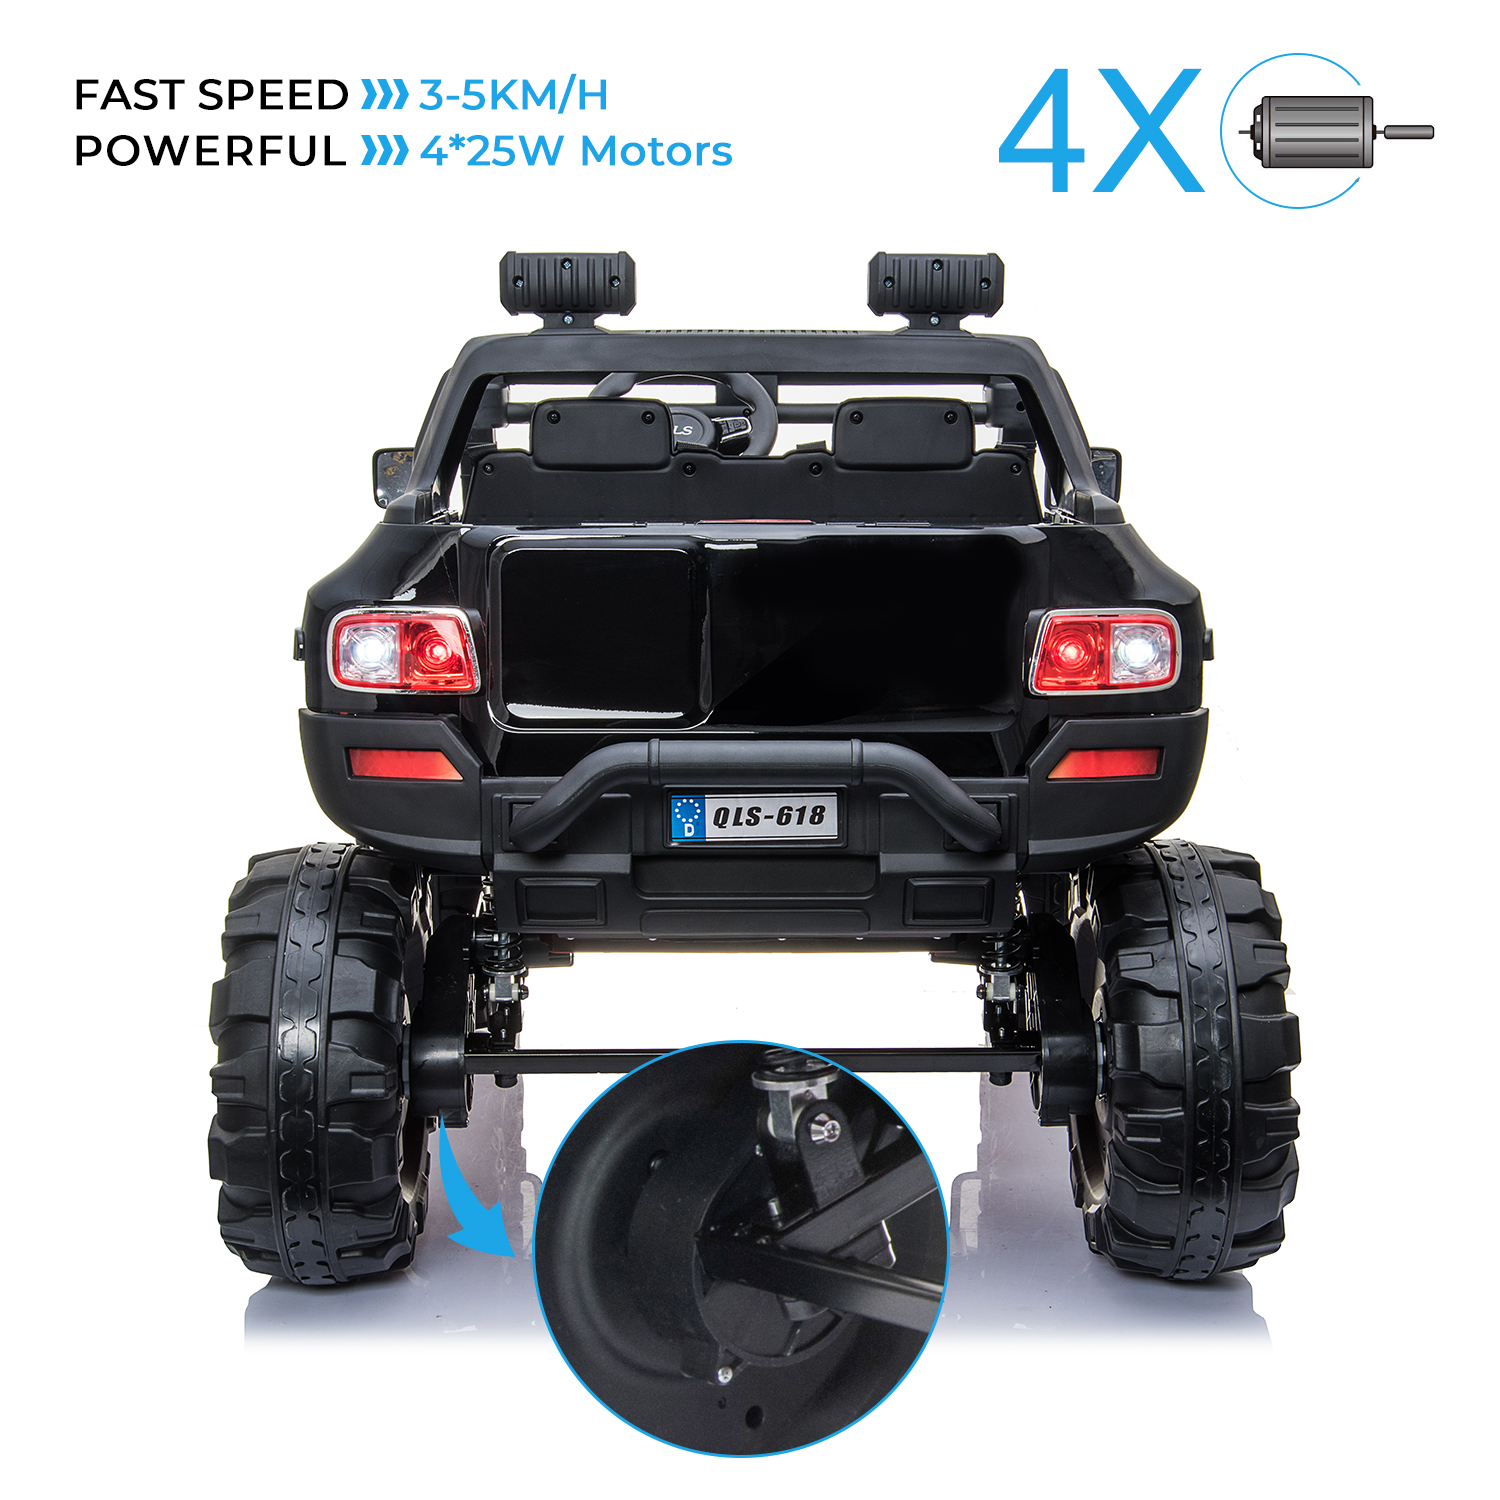 2-Seaters-4-4-Off-Road-Electric-12V-Ride-on-Car-with-Remote-Control miniature 12